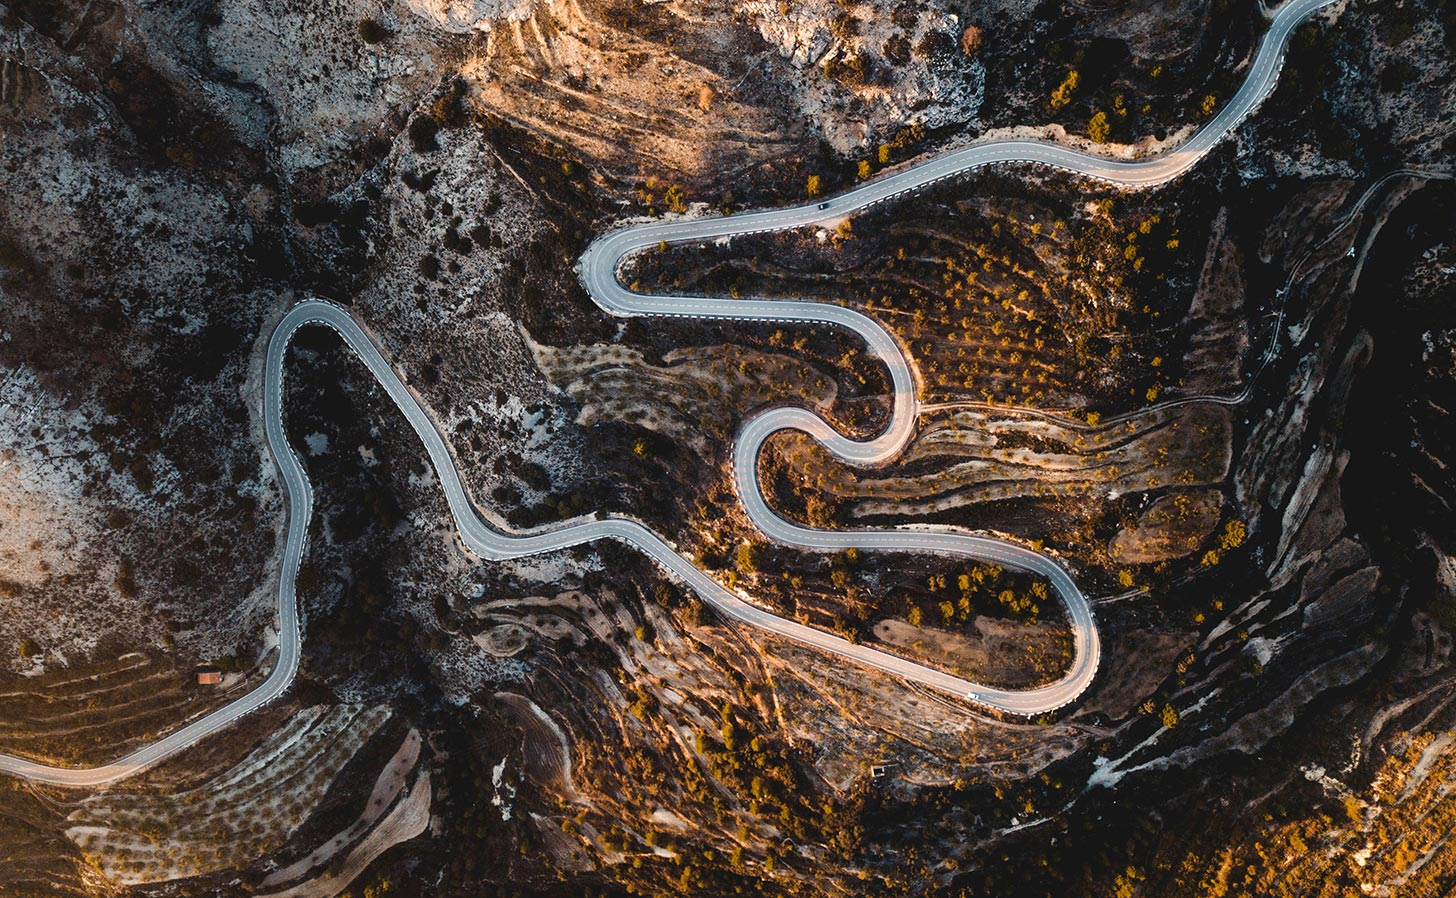 A mountain road near Confrides in Spain. Photo: Jack Anstey / Unsplash